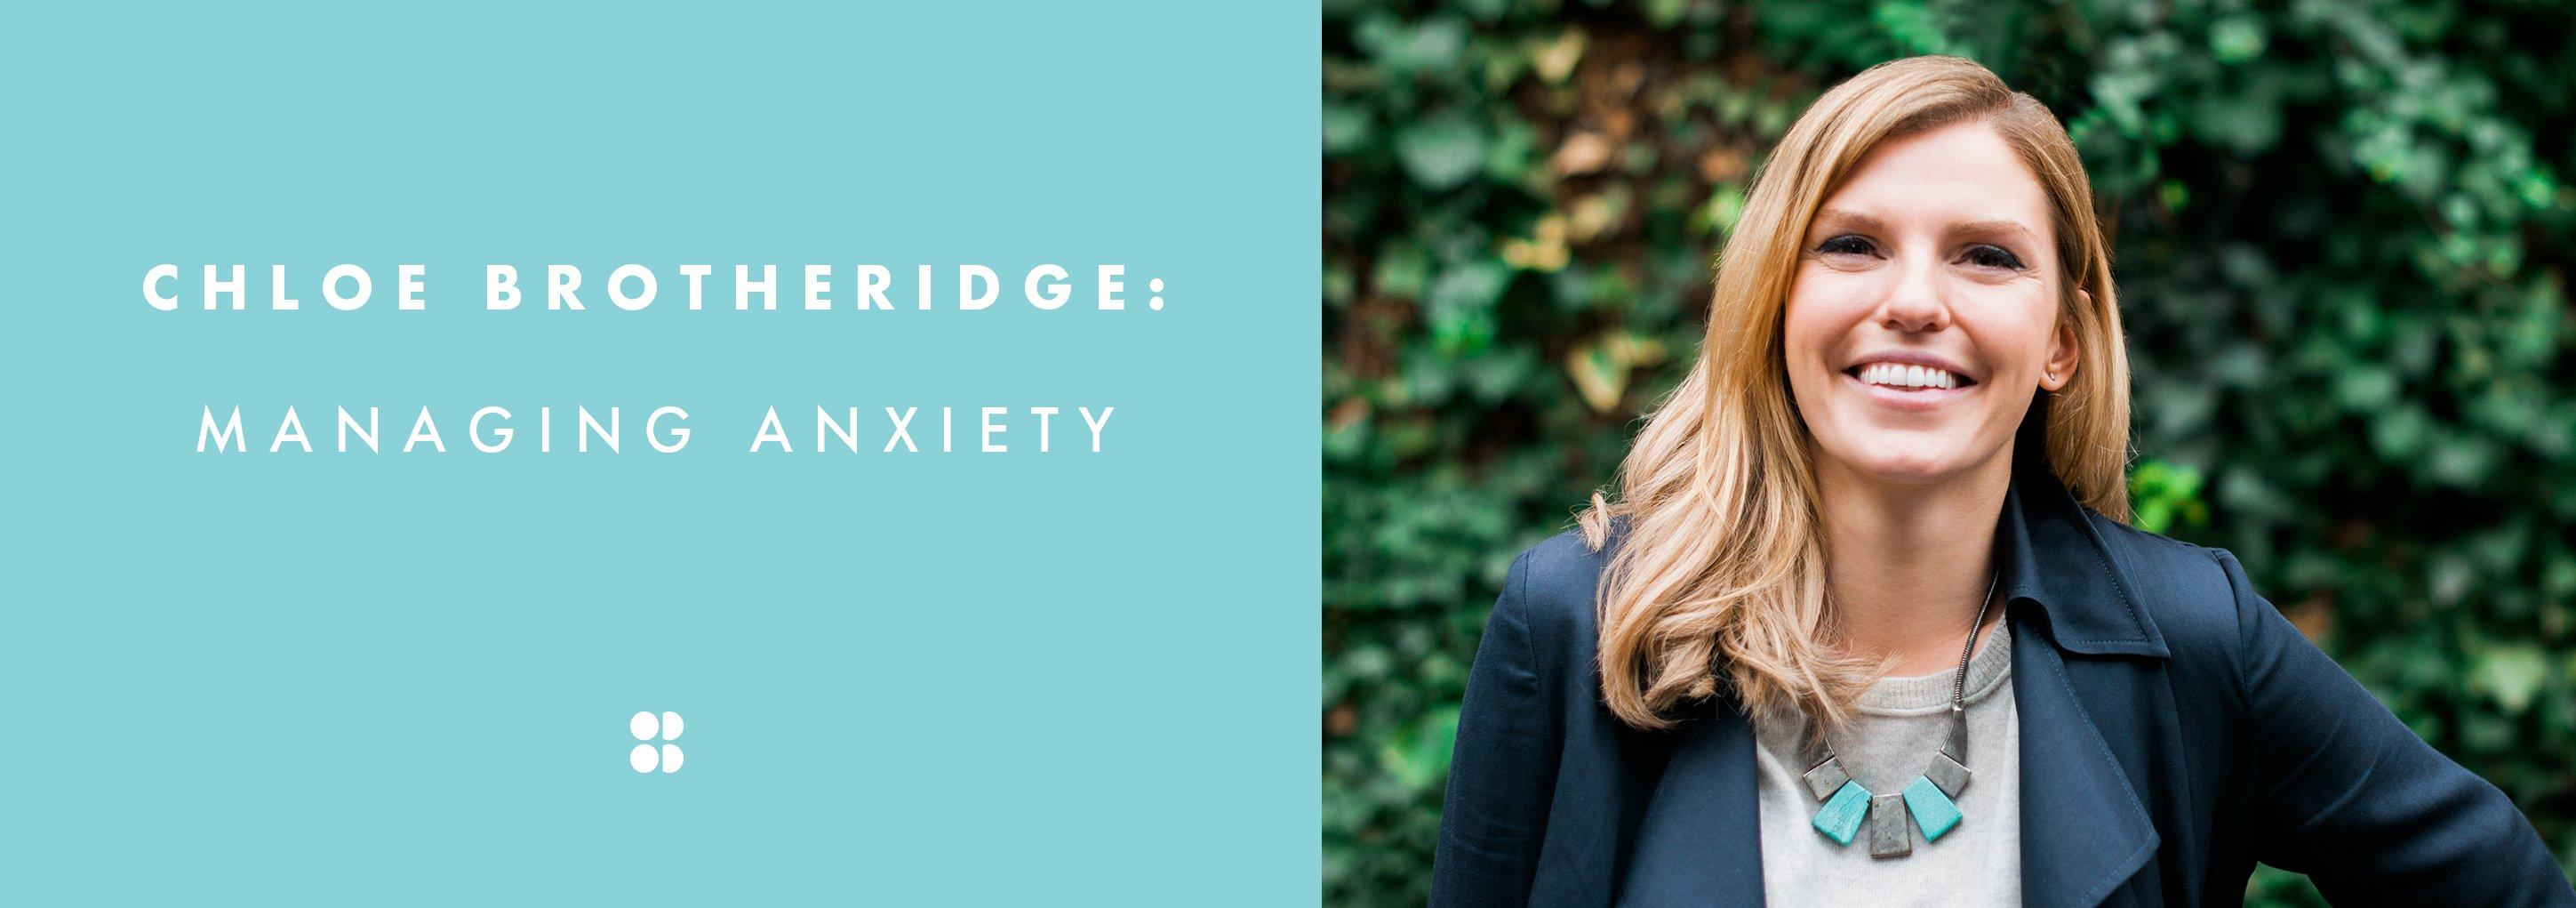 Chloe Brotheridge: Managing Anxiety